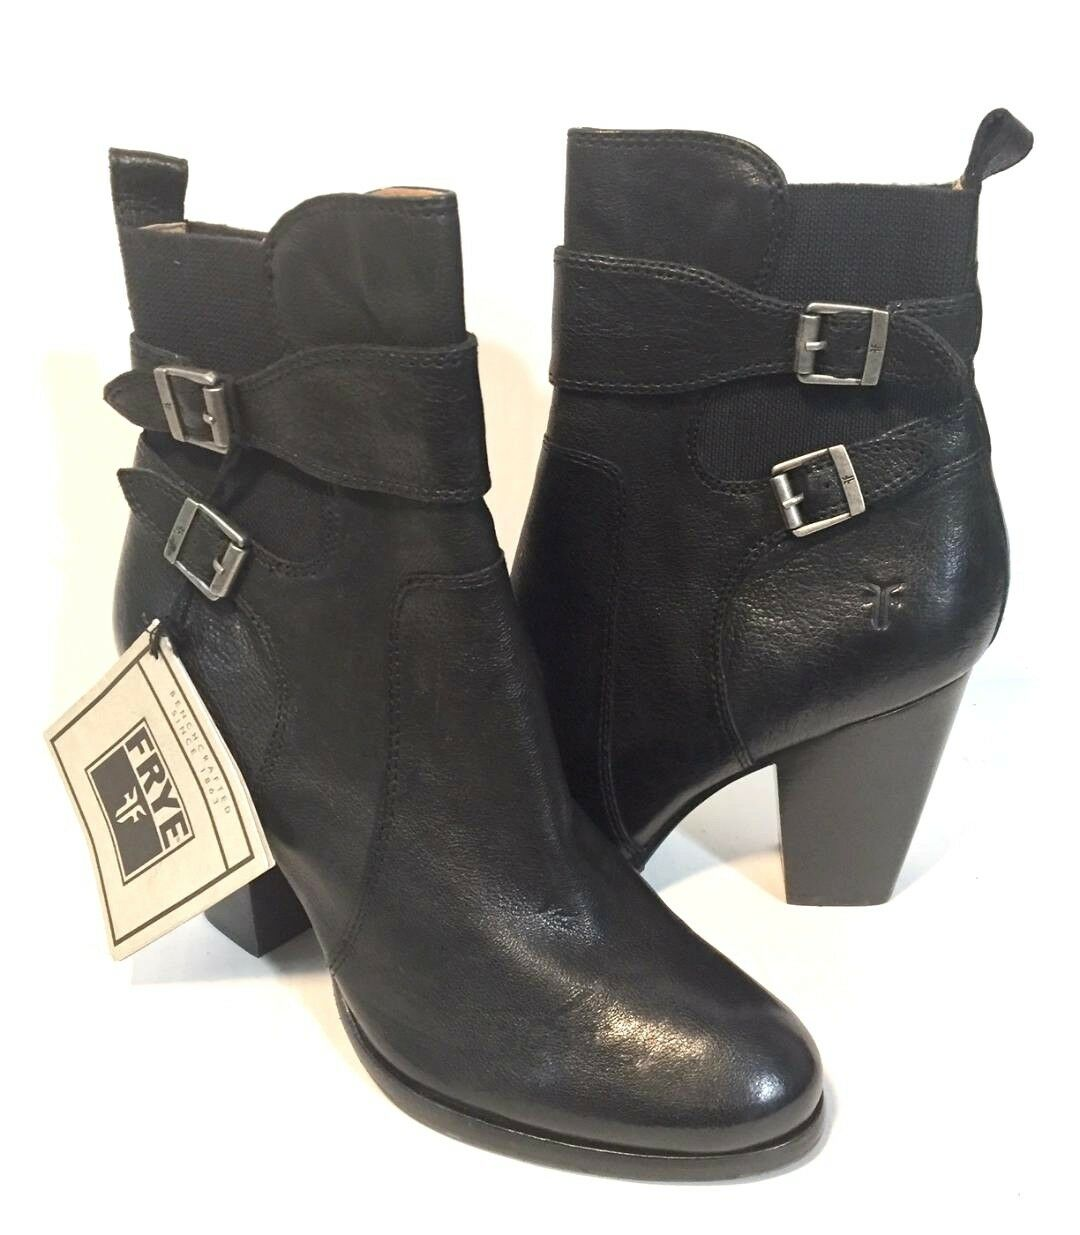 economico e di alta qualità NWT  348 FRYE FRYE FRYE PATTY GORE MID-CALF  nero LEATHER DUAL BUCKLE ZIPPER stivali- 9.5  in linea